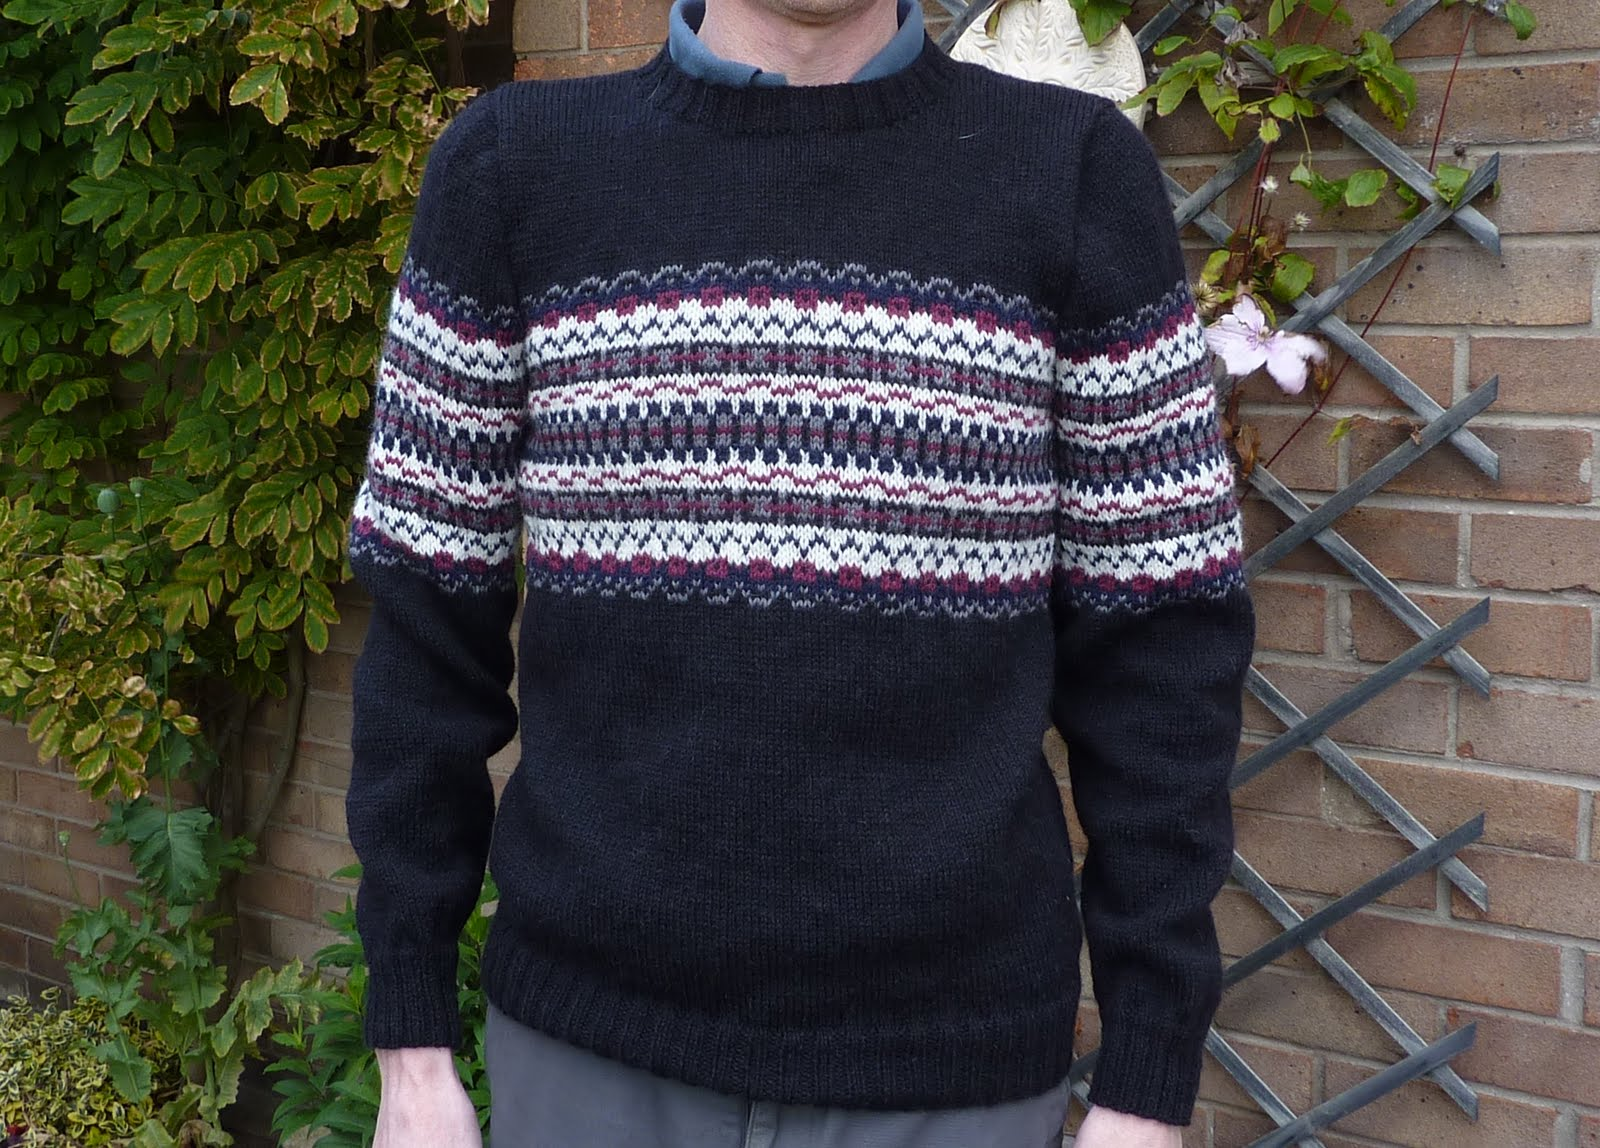 Men's Sweater Knitting Pattern Instruction Image